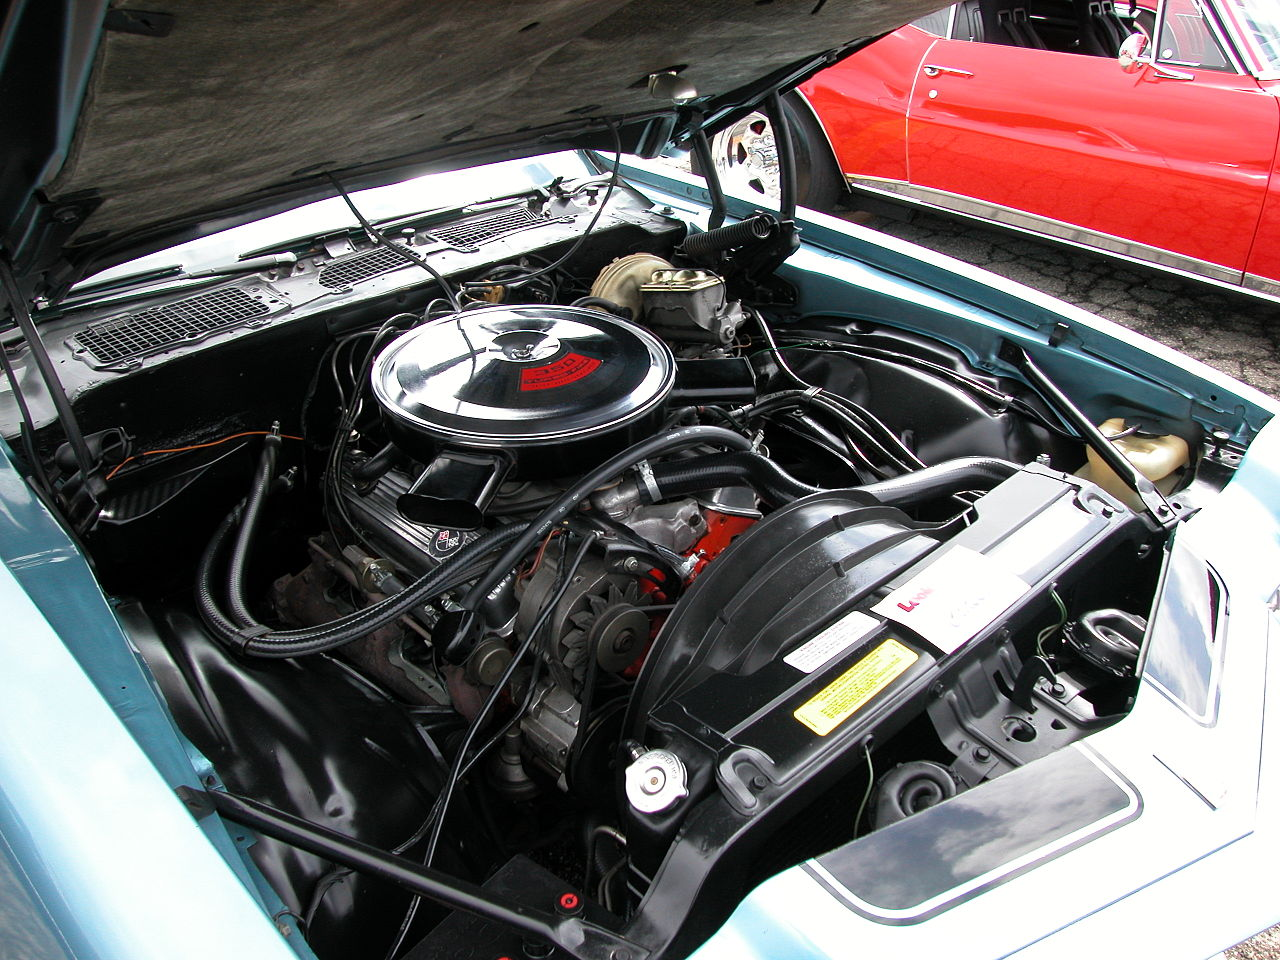 File:1970ChevroletCamaroZ28-engine.jpg - Wikimedia Commons on 92 camaro engine wiring diagram, 68 camaro engine wiring diagram, 69 camaro engine wiring diagram, 67 camaro engine wiring diagram,